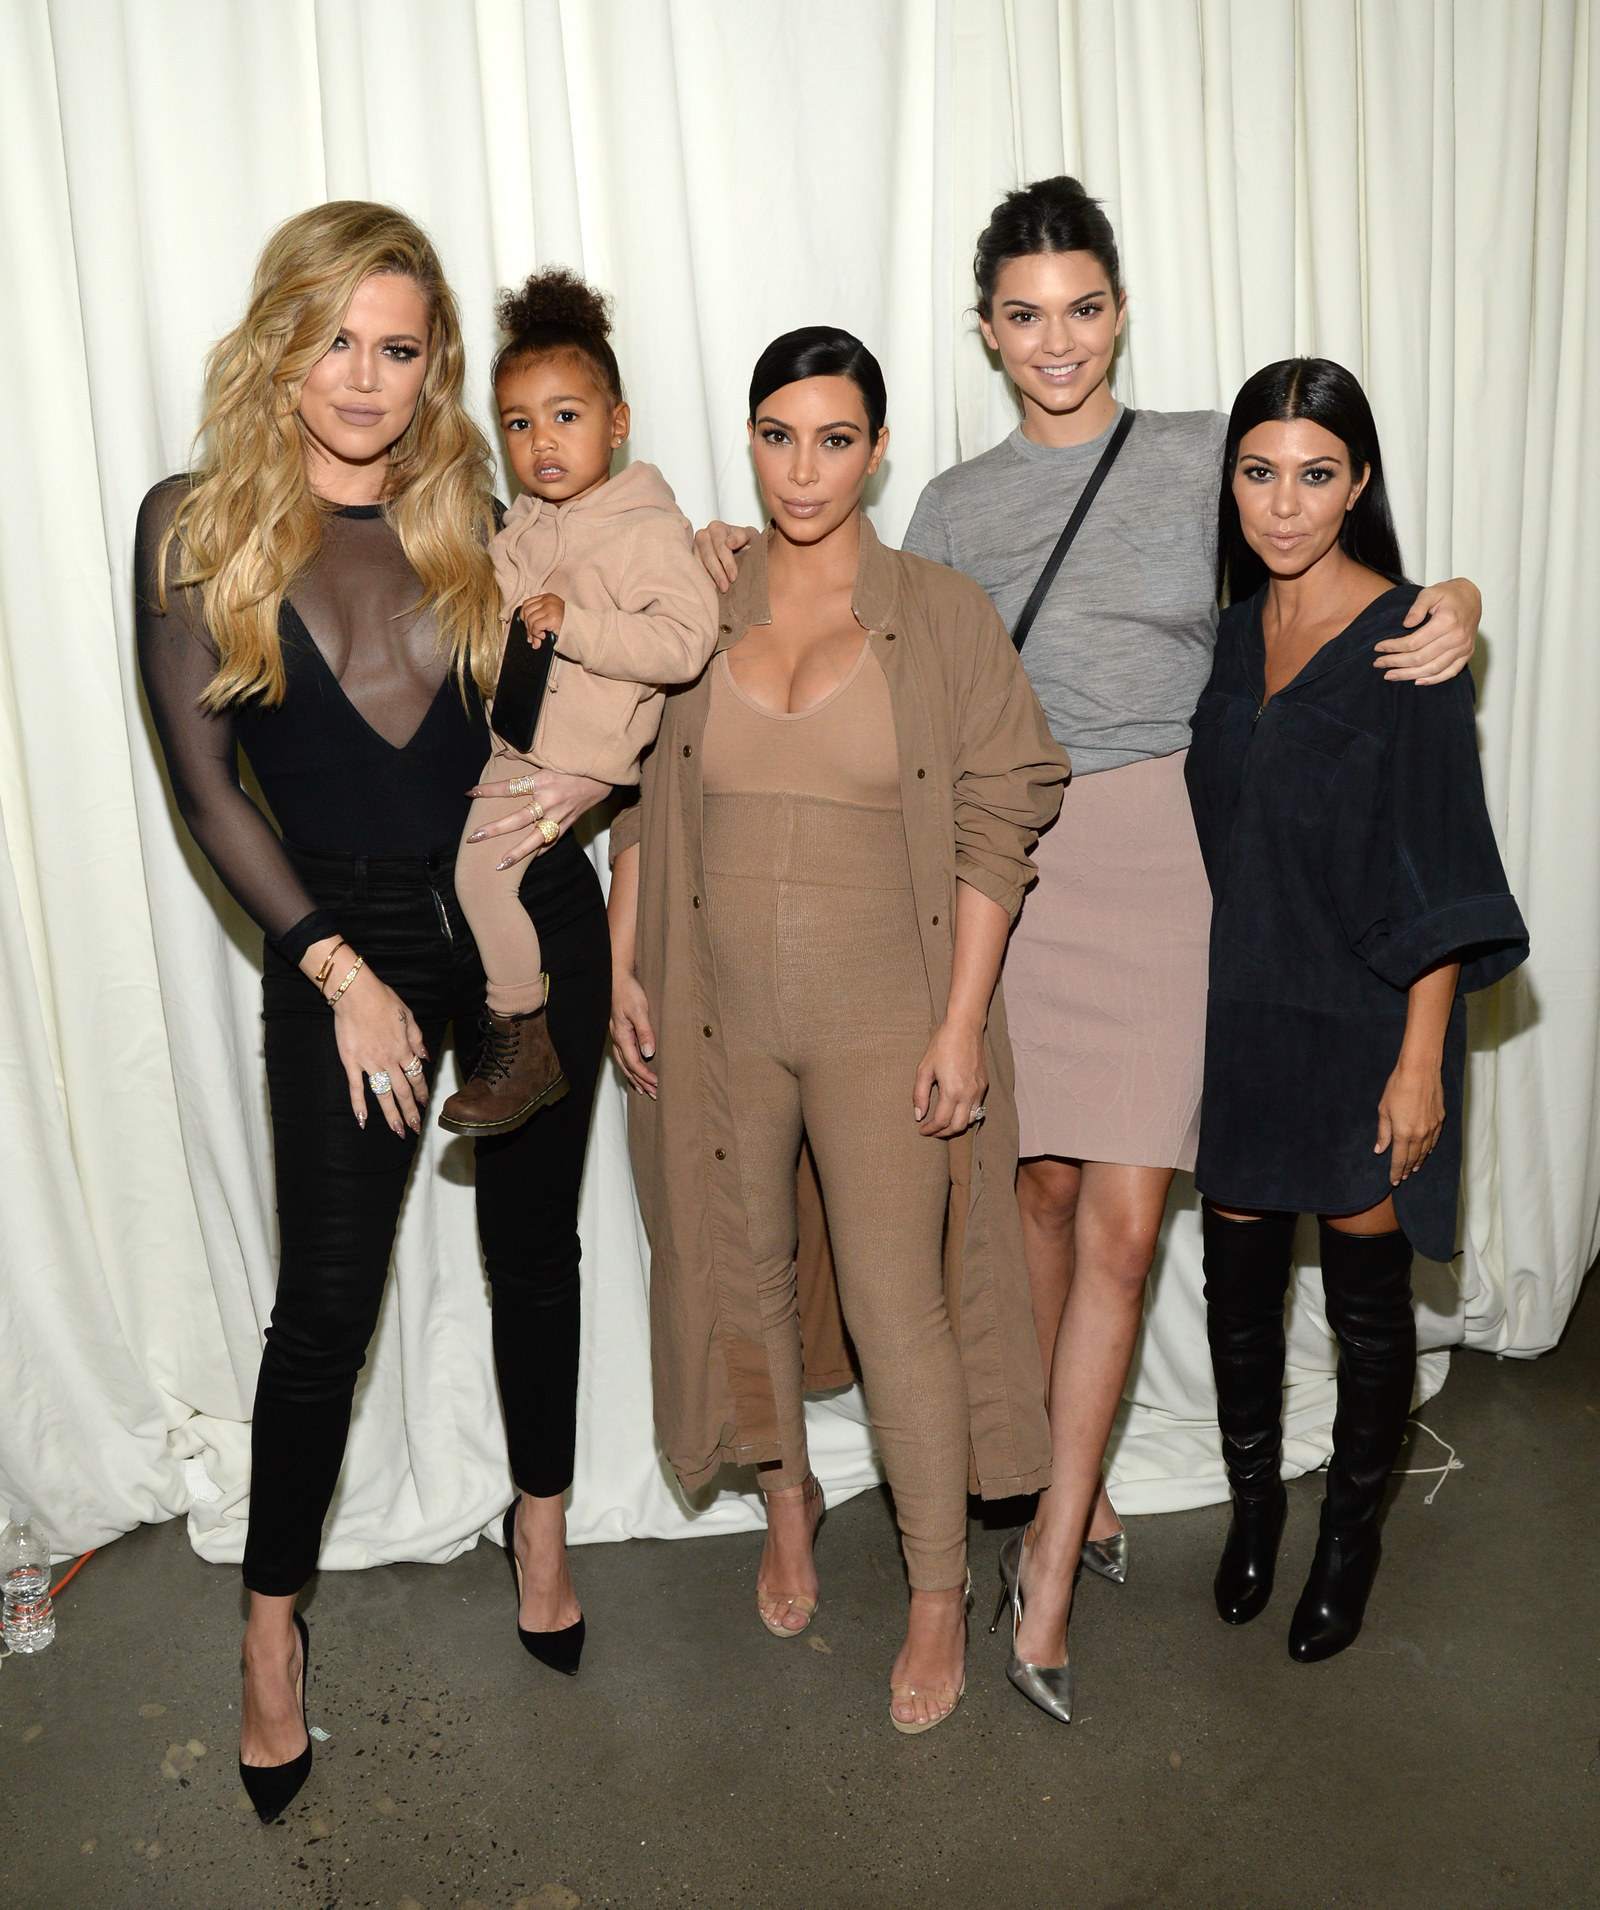 How The Kardashians Manipulated The Media To Become The Most Famous Family In The World